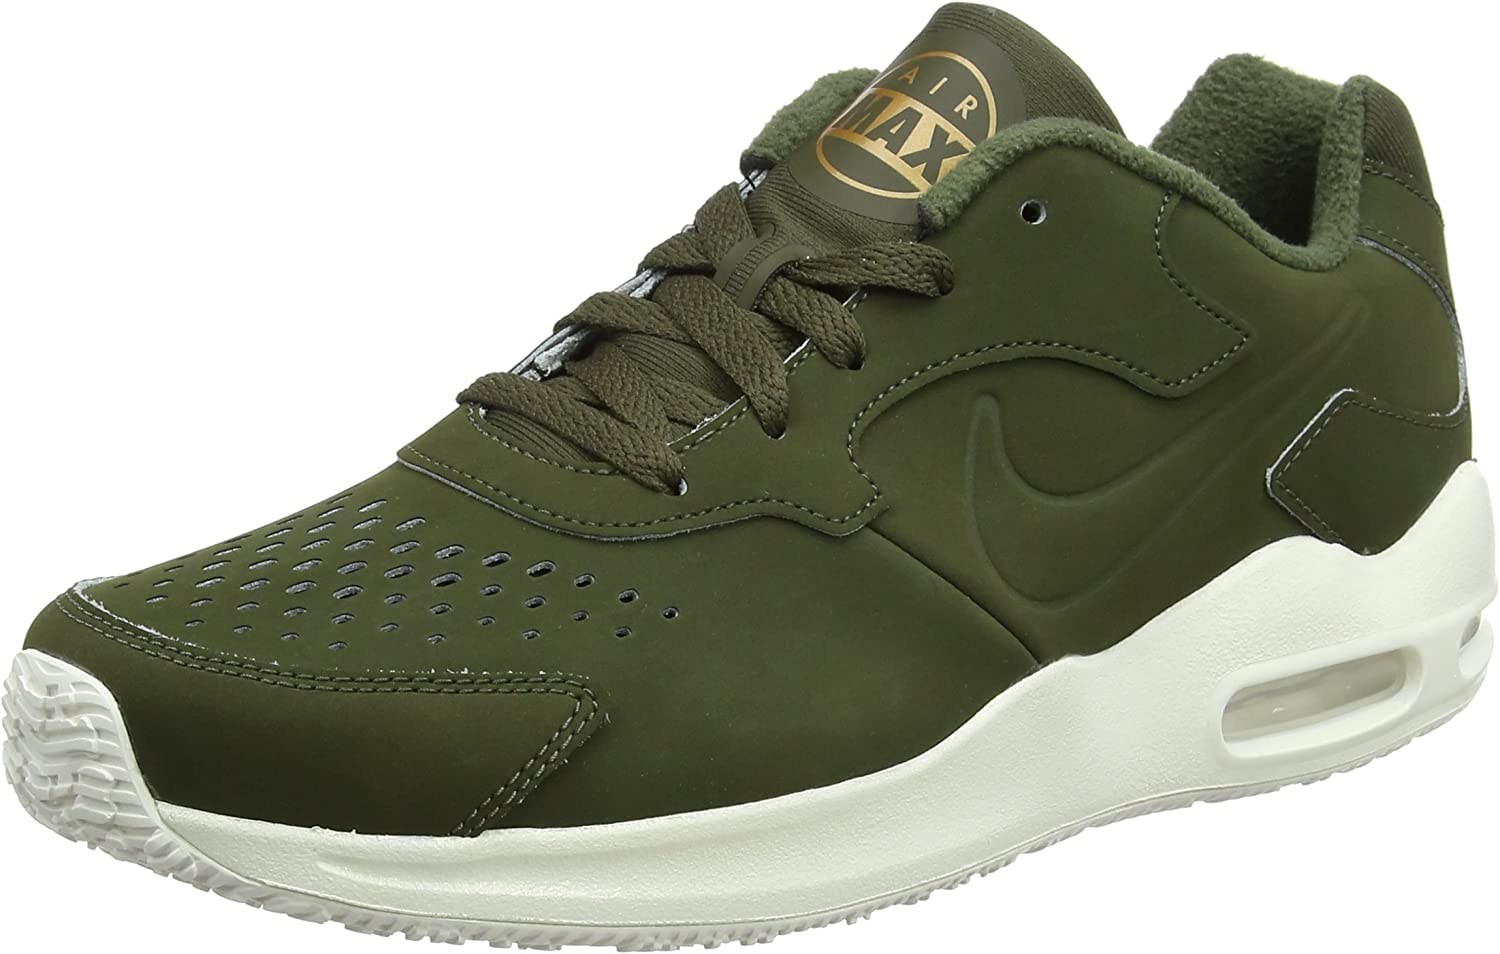 Nike Men's Air Max Guile Premium Trainers